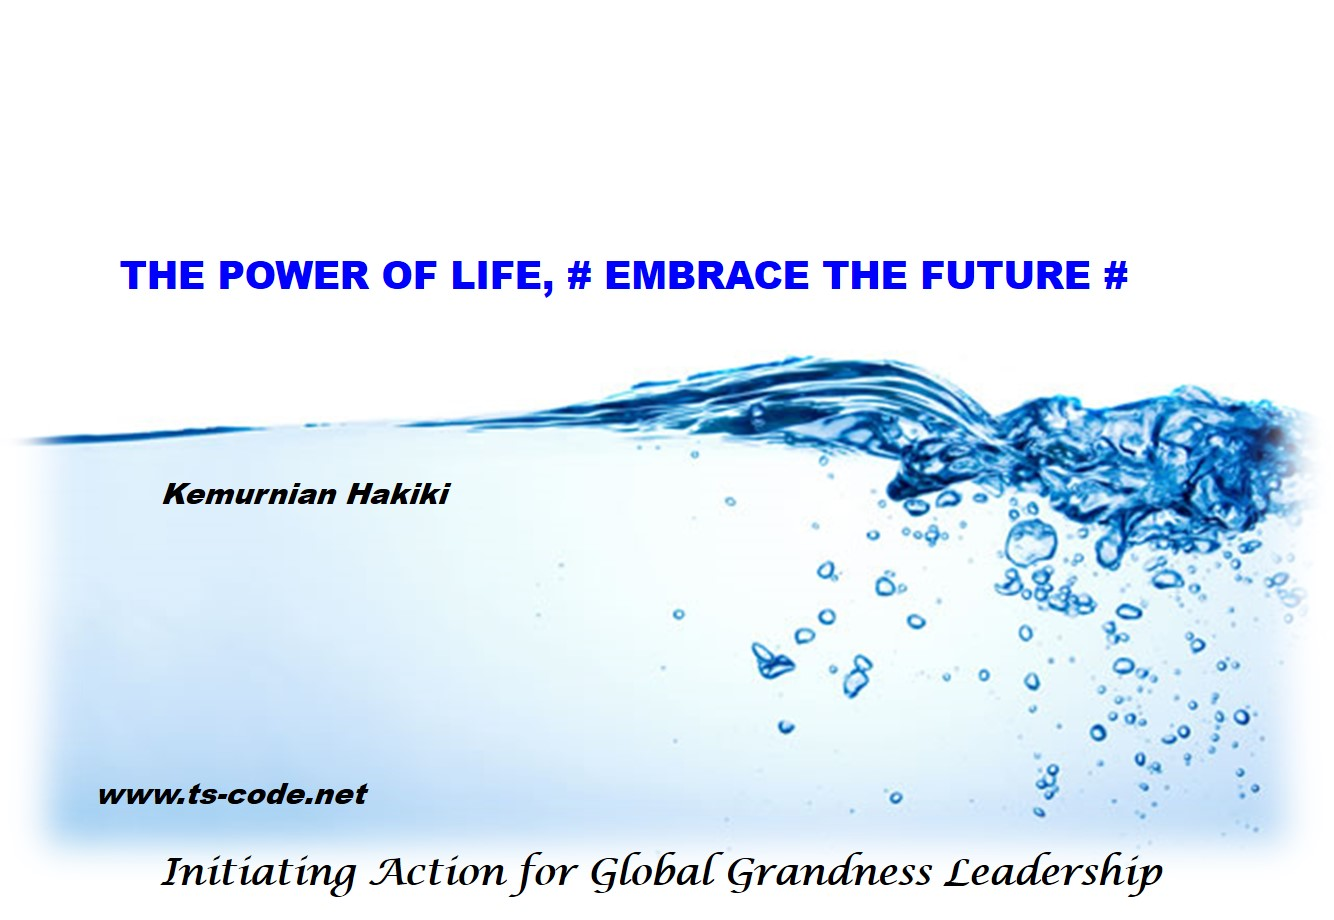 Power of Life-Kemurnian hakiki